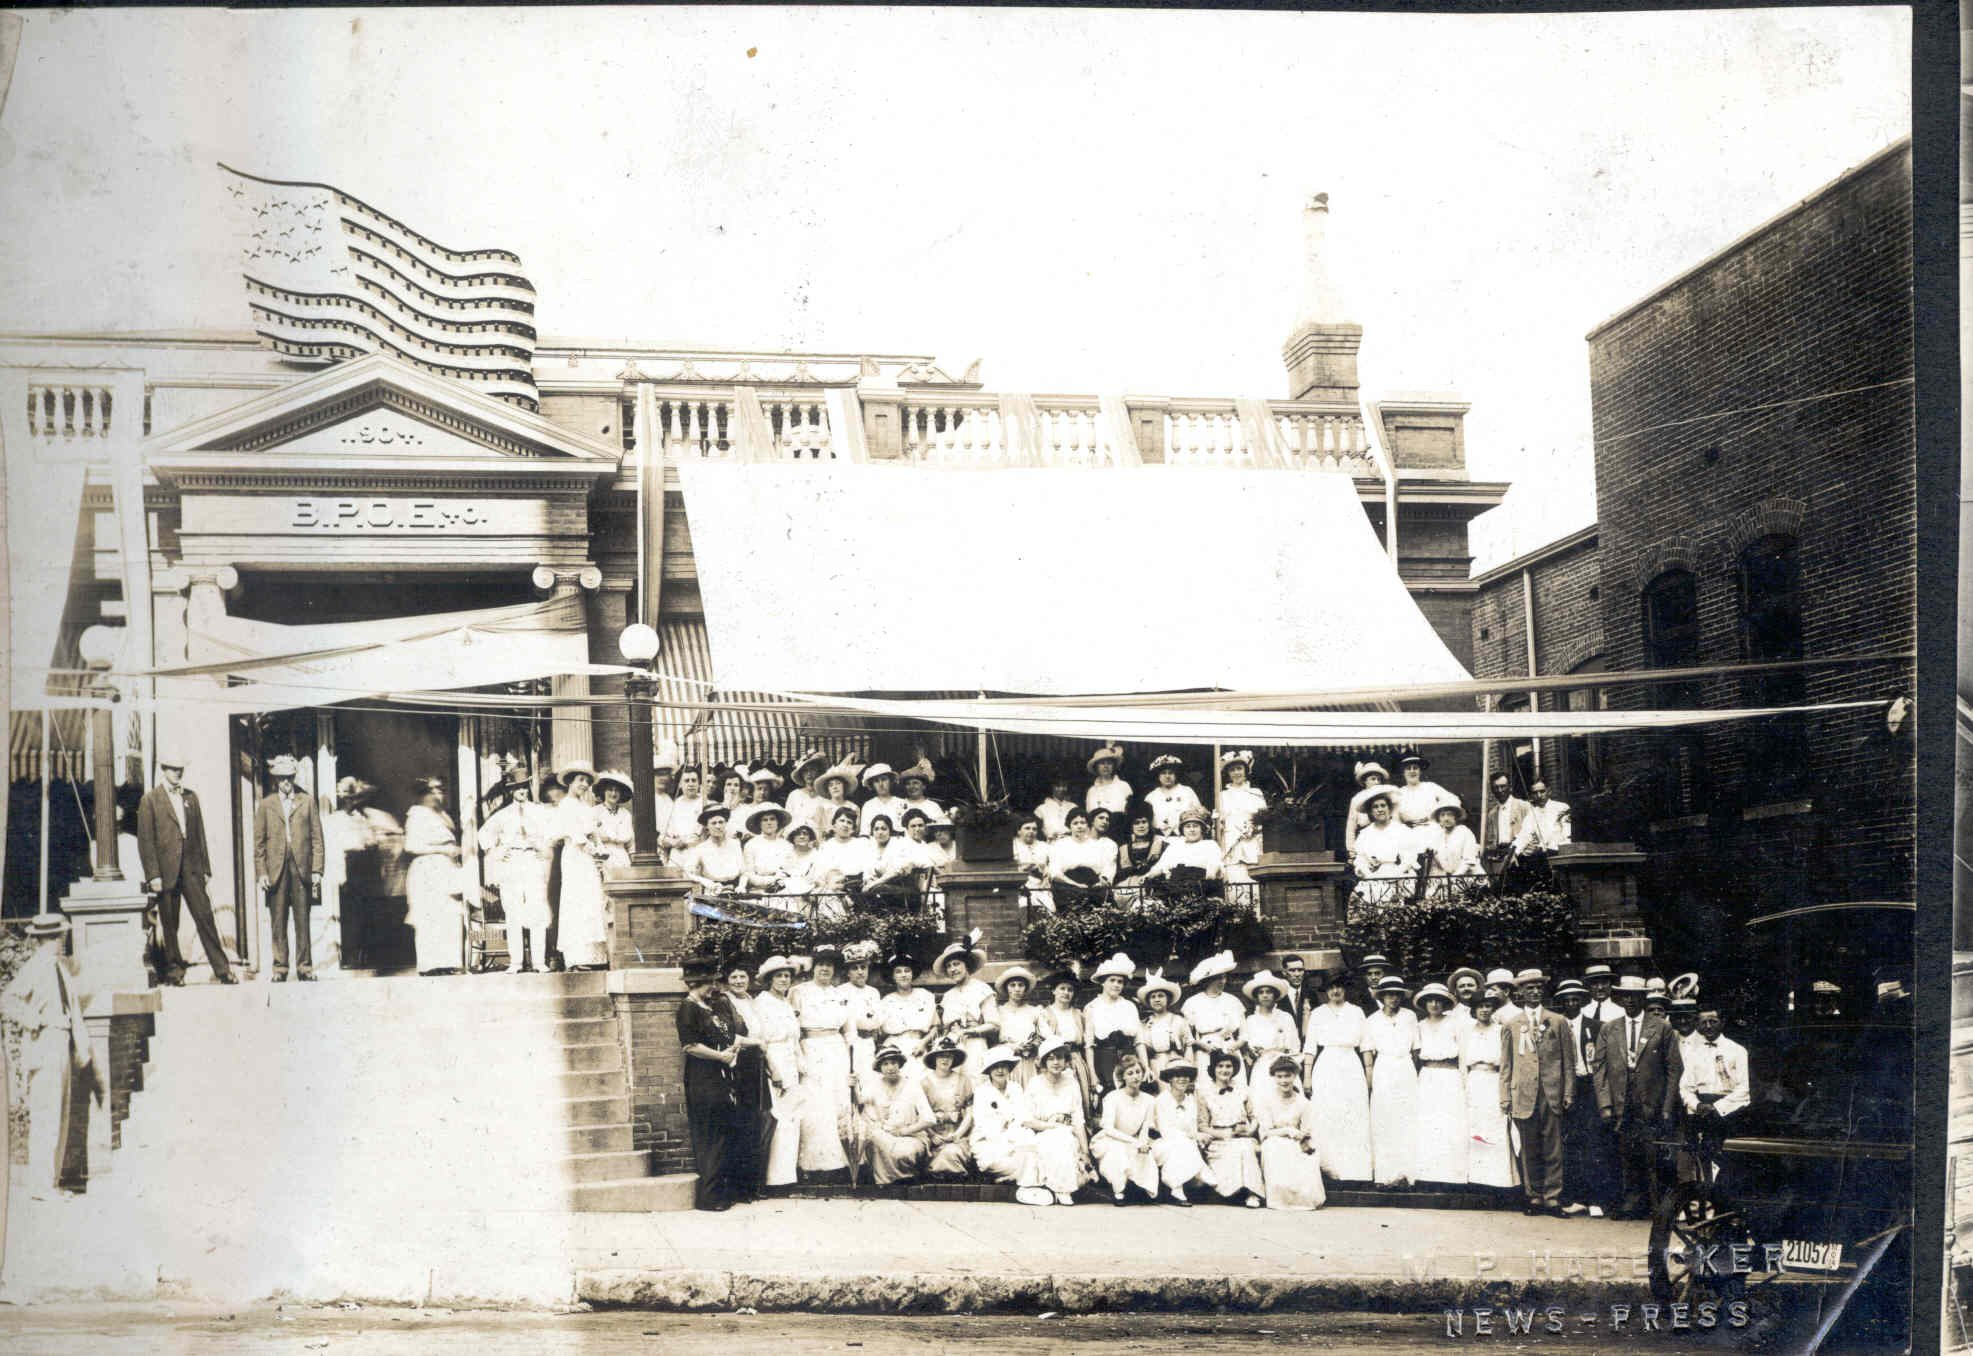 Elks Lodge Women's Group Photo, c. 1920s.  b/w.  A large group of women in white long dresses/hats posed on the sidewalk and porch of Elks Club Building, a few men in the photo.  Image provided by the St. Joseph Museums, Inc.